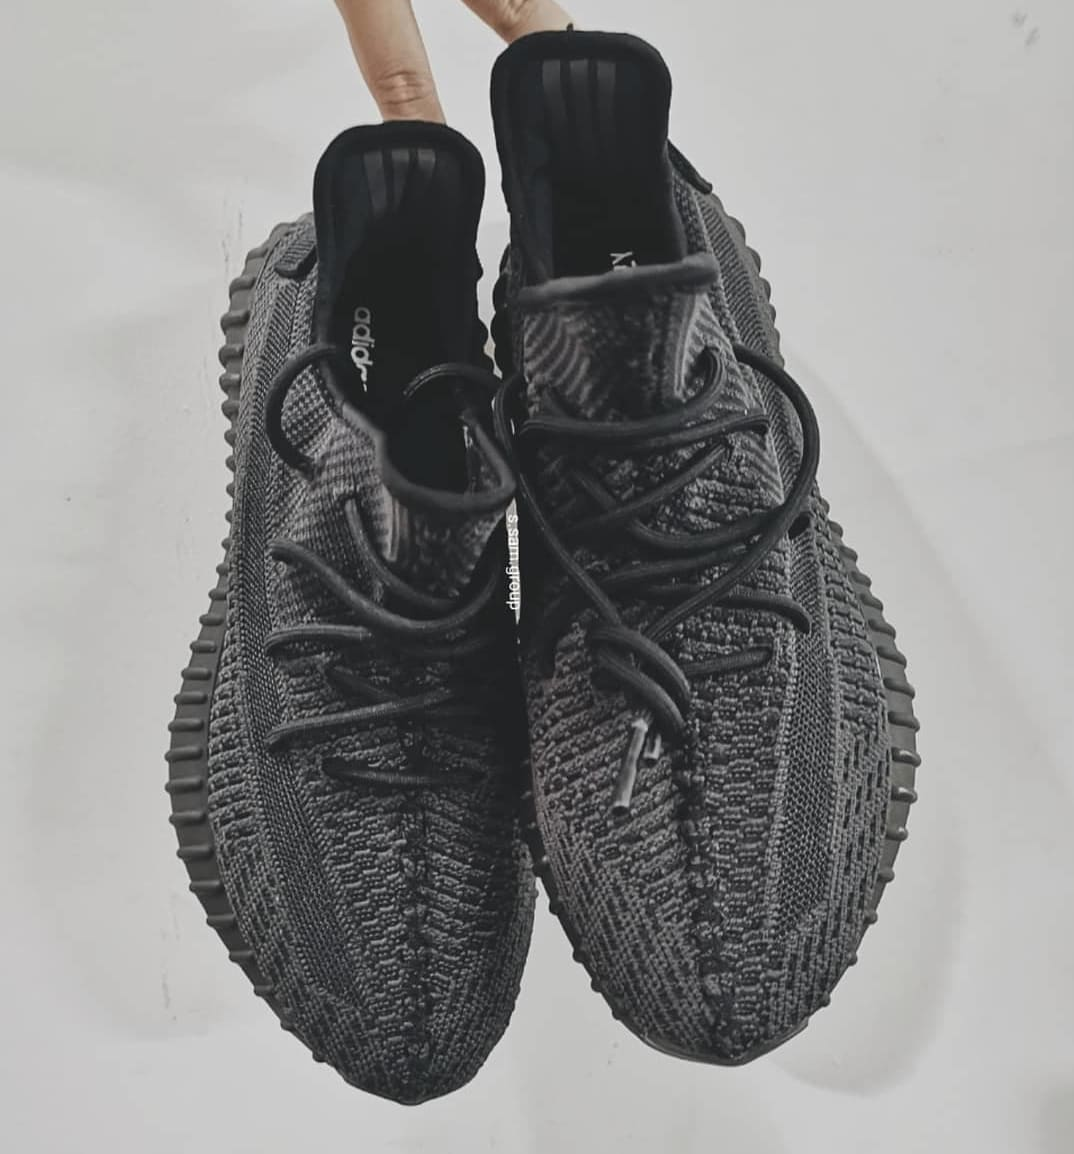 29668551d052c Adidas Yeezy Boost 350 V2  Black  Relase Date